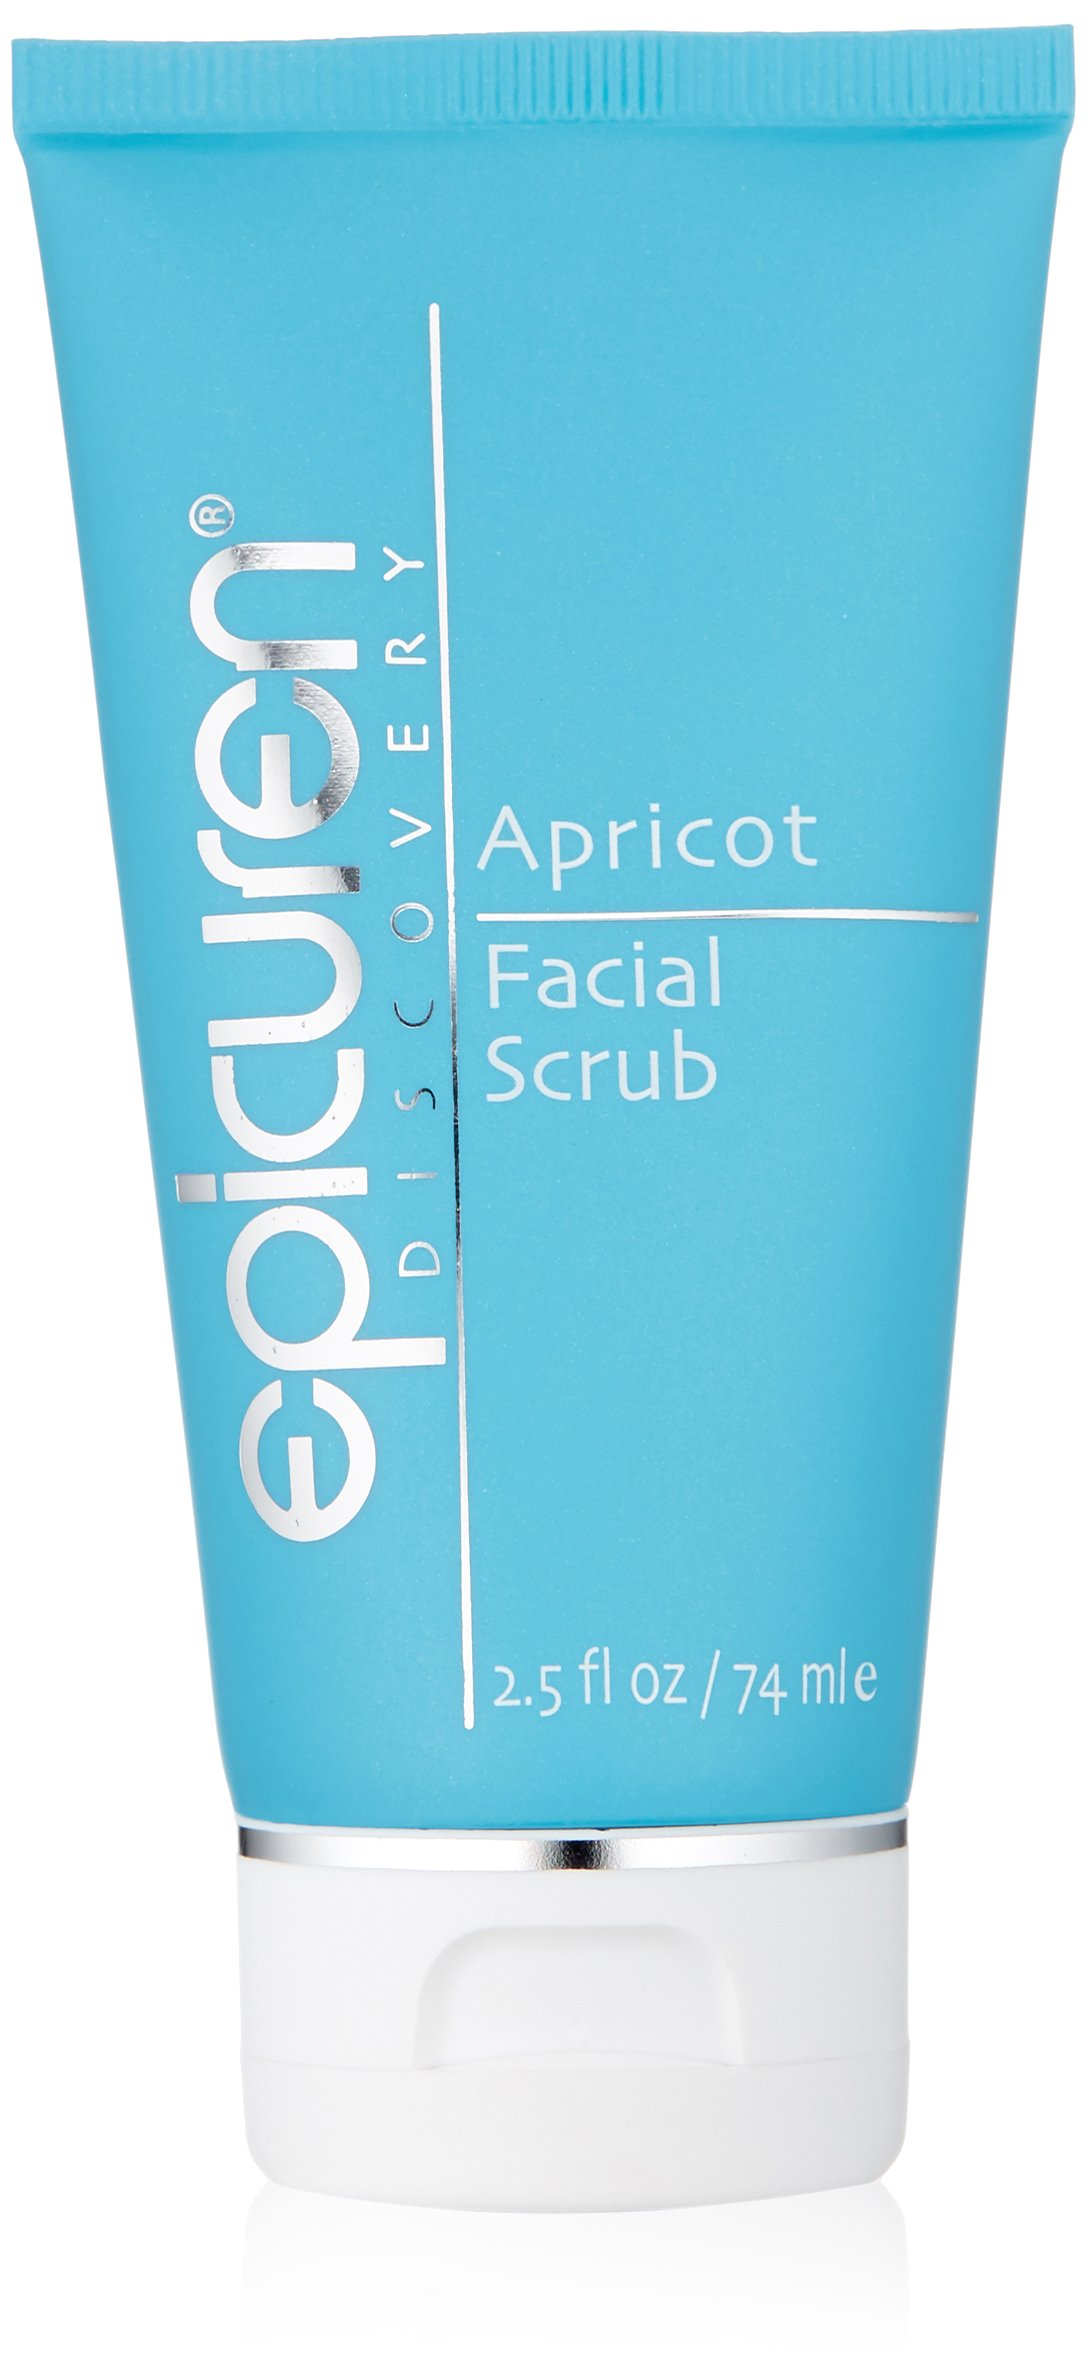 Epicuren Discovery Apricot Facial Scrub, 2.5 Fl oz by epicuren DISCOVERY